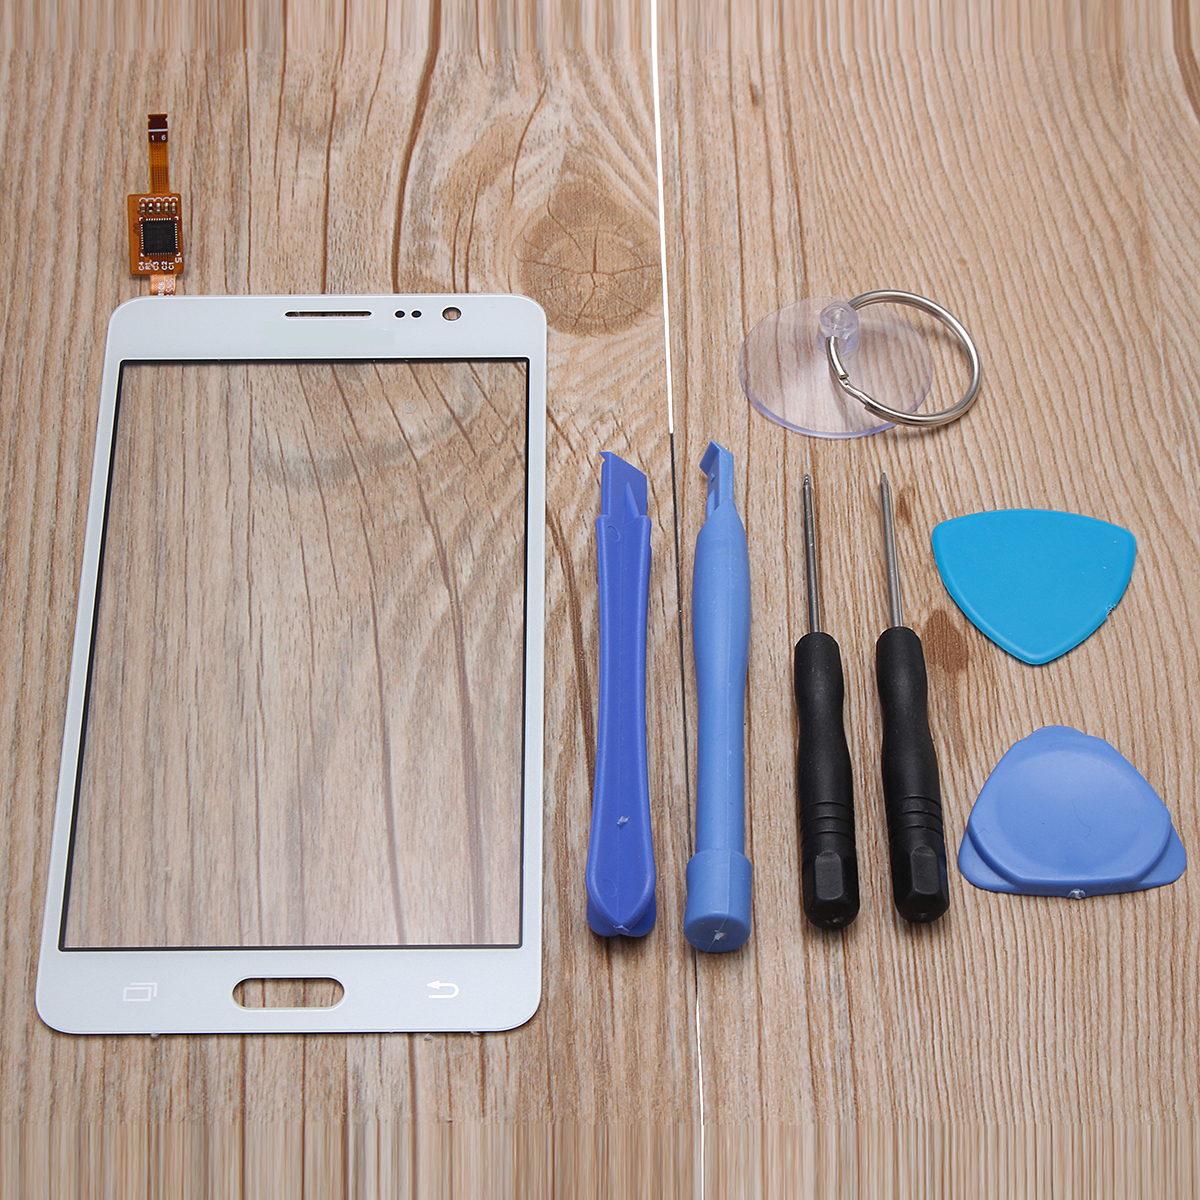 LCD Display Touch Screen Mobile Phone Screen Digitizer Assembly Glass Panel Replacement Parts for Samsung Galaxy On5 G550T